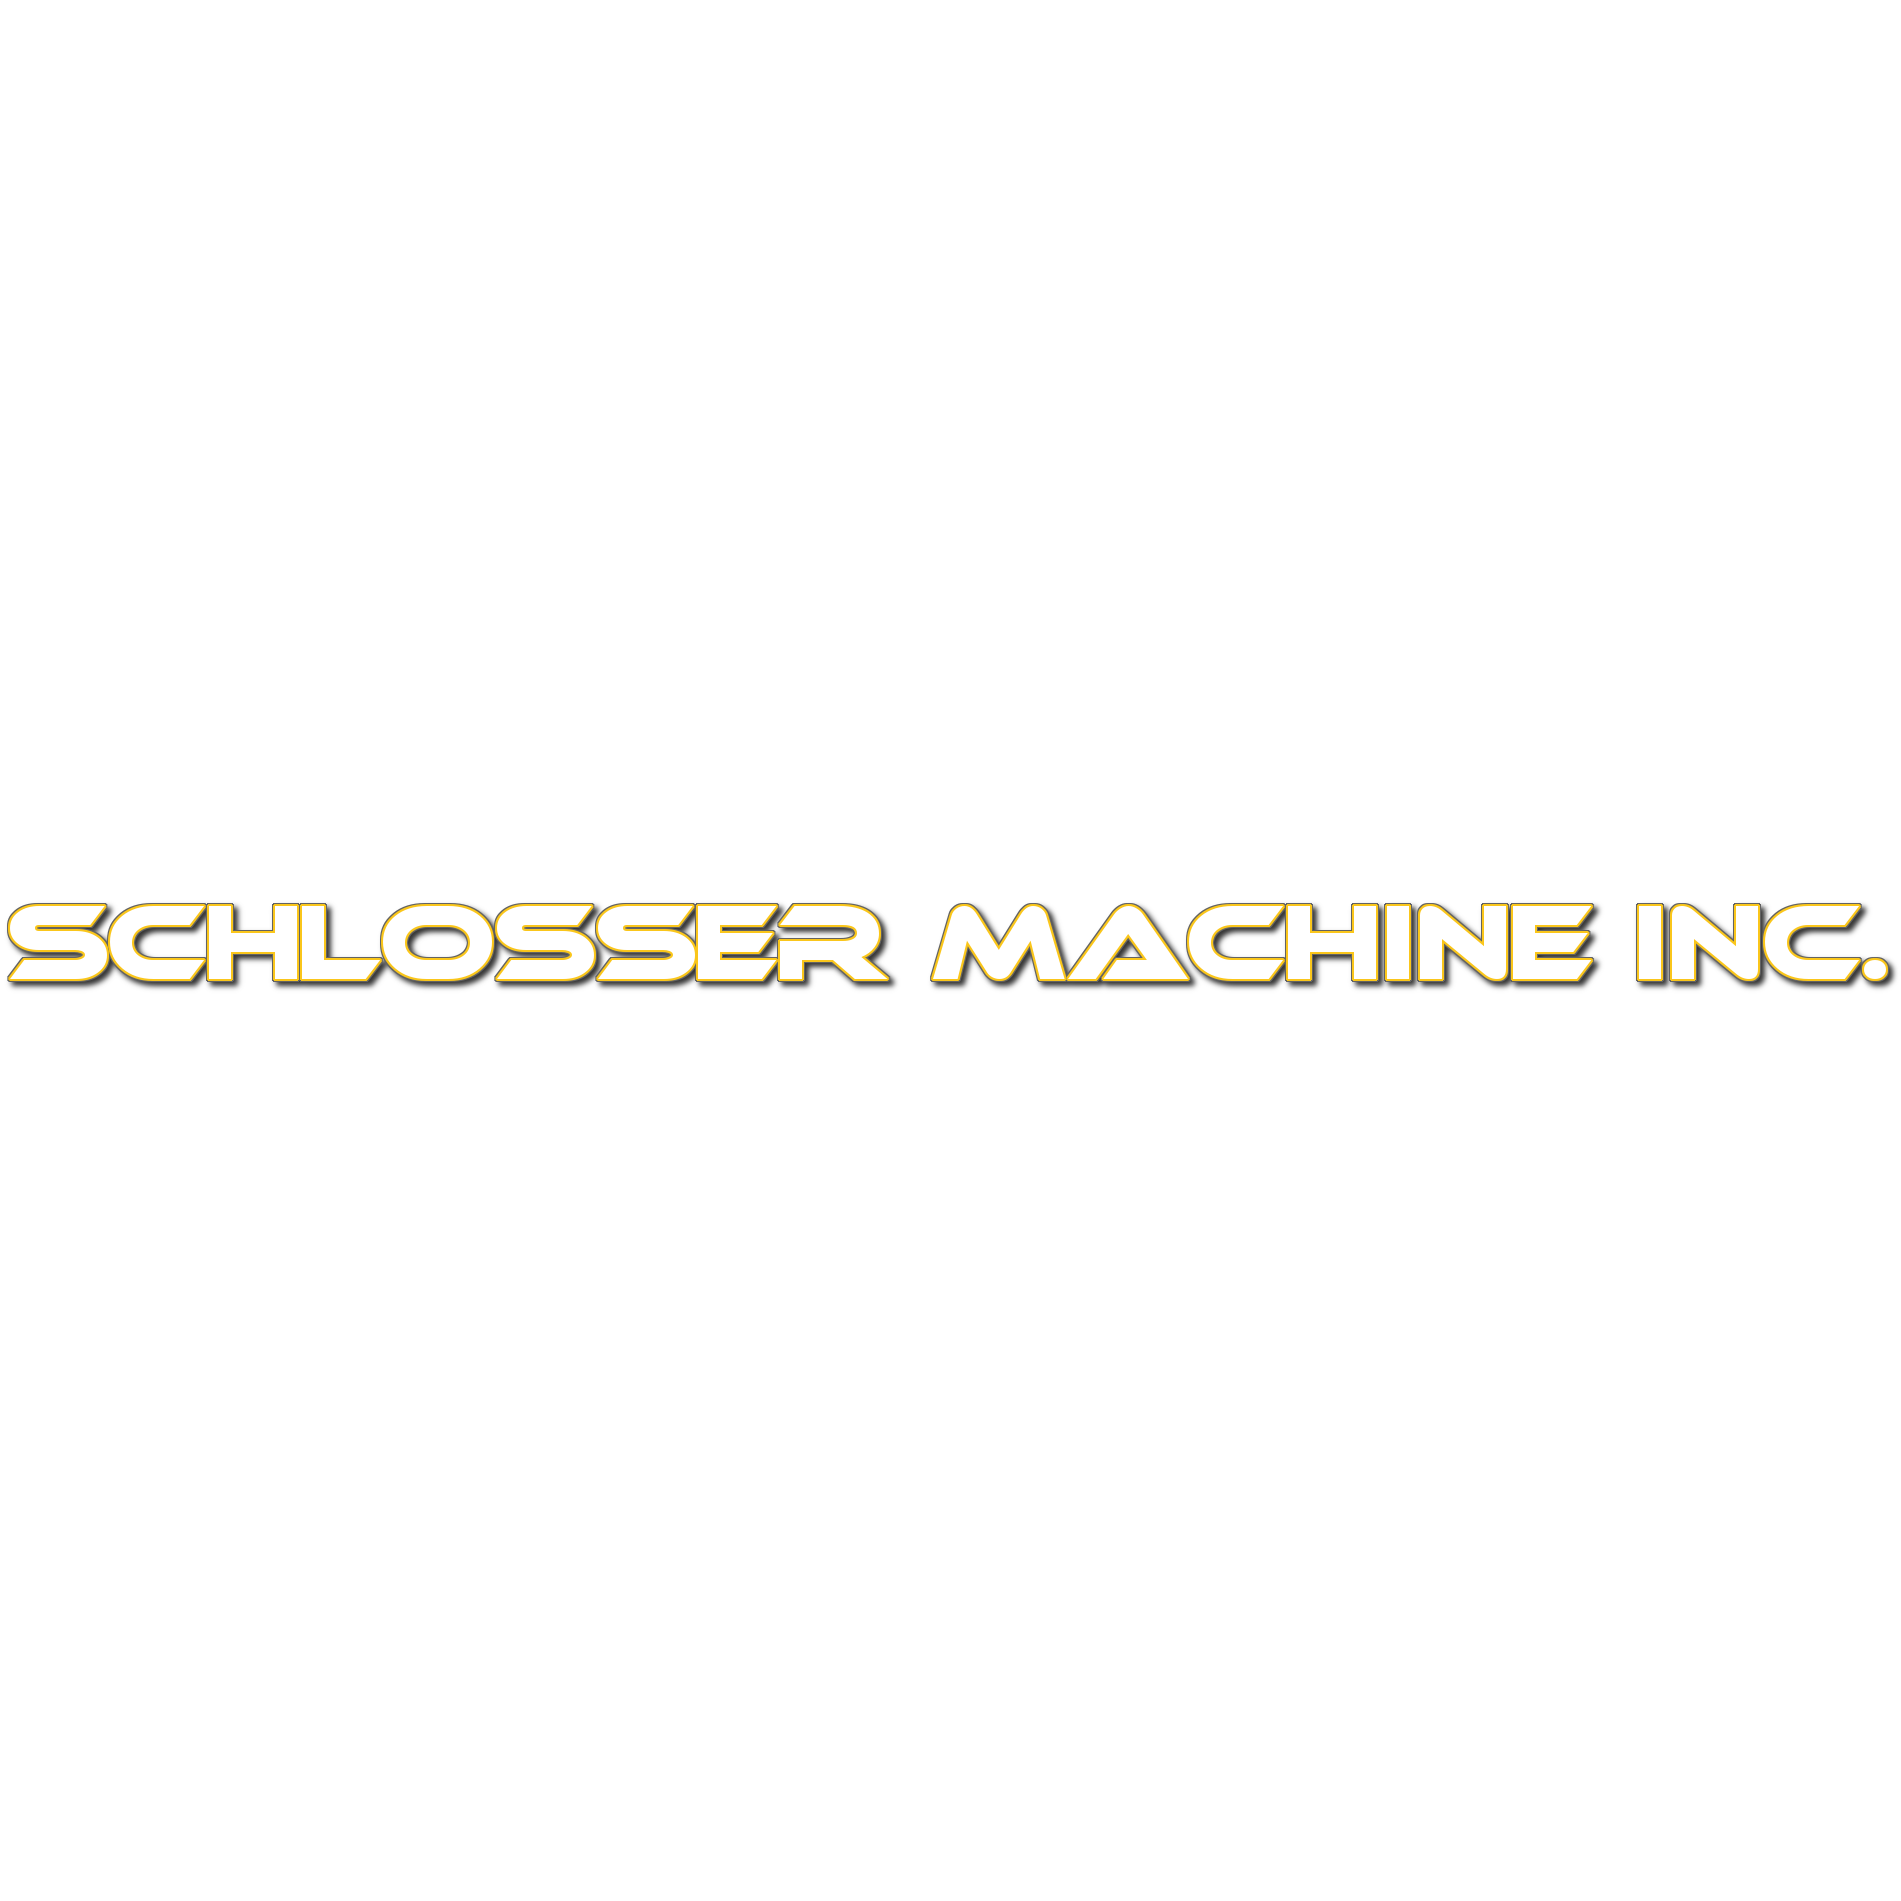 Schlosser Machine Inc.